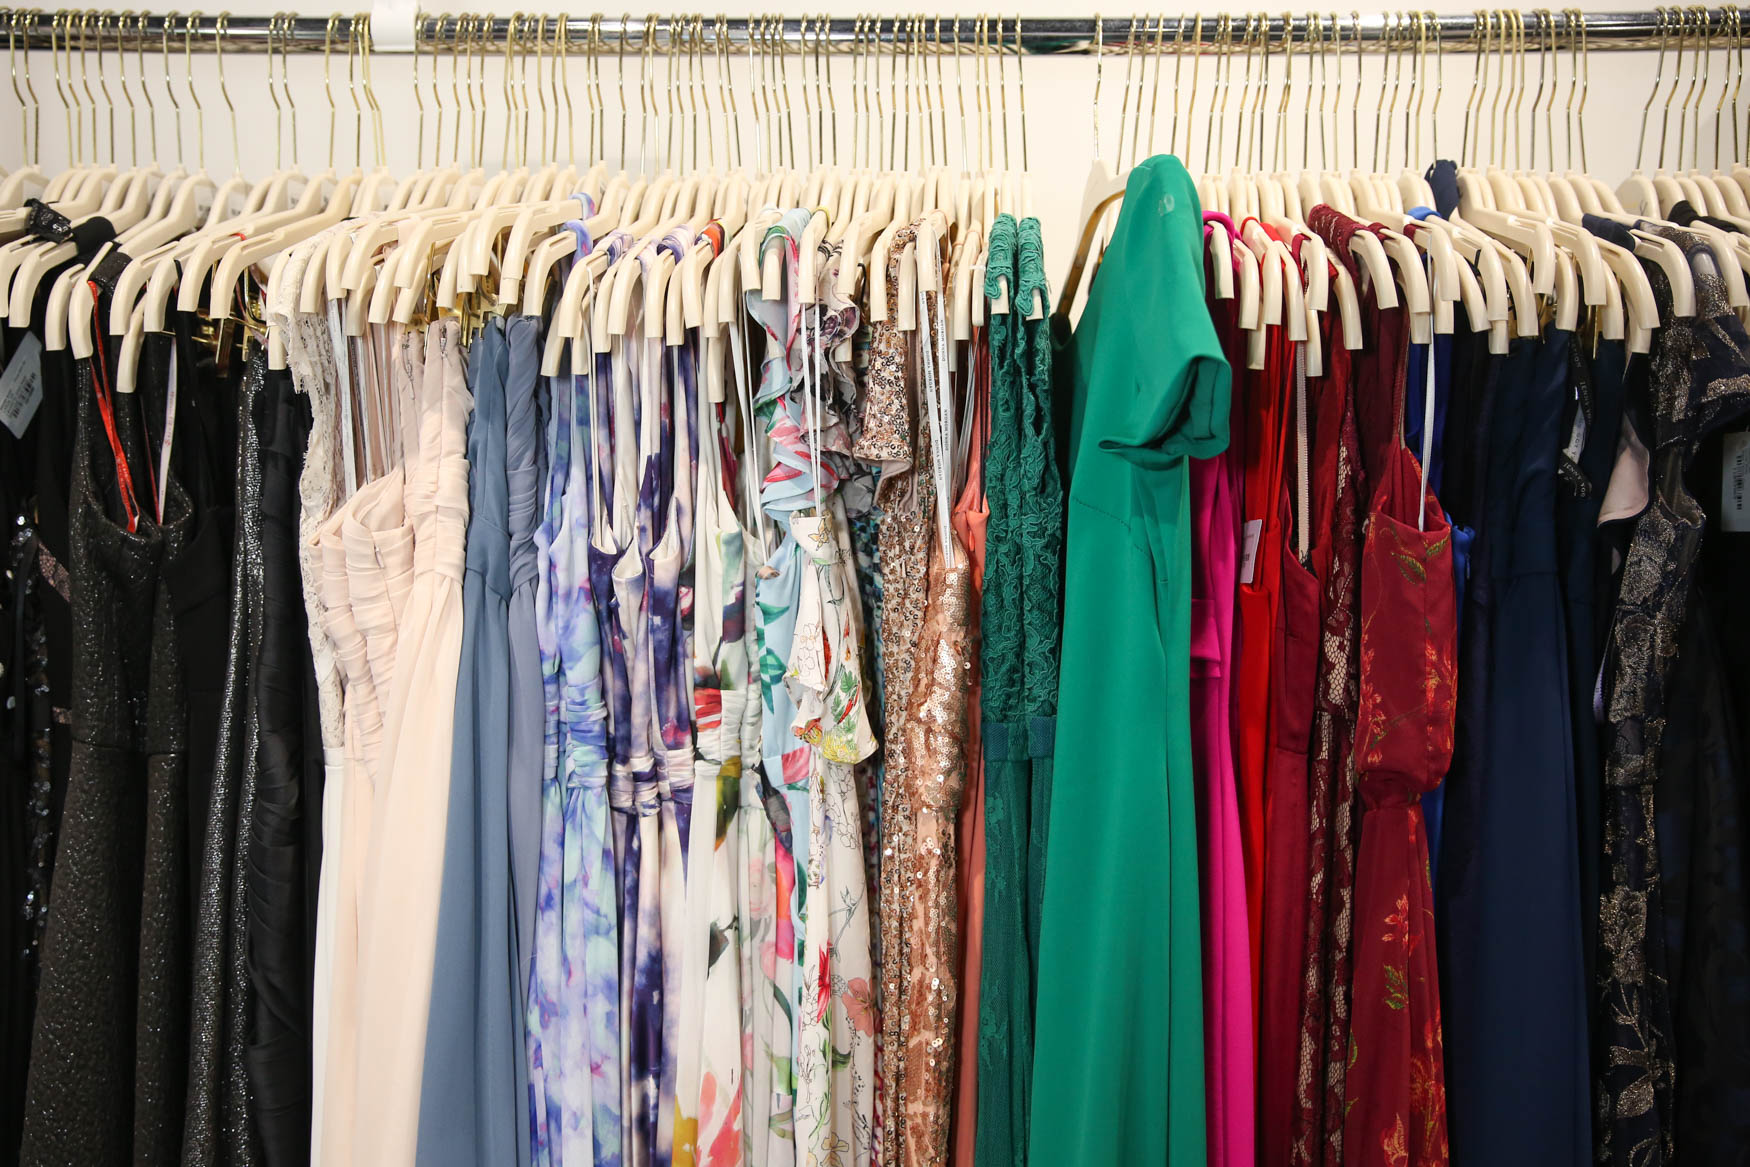 Rent the Runway is hosting a sample sale at a pop up location in Cady's Alley from Thursday, December 13 to  Friday, December 22. The sale will include everything from gowns to bomber jackets, all of which are available at steep discounts. The clothes and accessories that are up for grabs have been rented before,  but most of the garments have minimal wear and tear. For every item sold, Rent the Runway will donate $1 to Dress for Success. The deals are definitely going to go fast and doors open at 8 a.m., so be sure to get there early to snag the best buys. (Amanda Andrade-Rhoades)